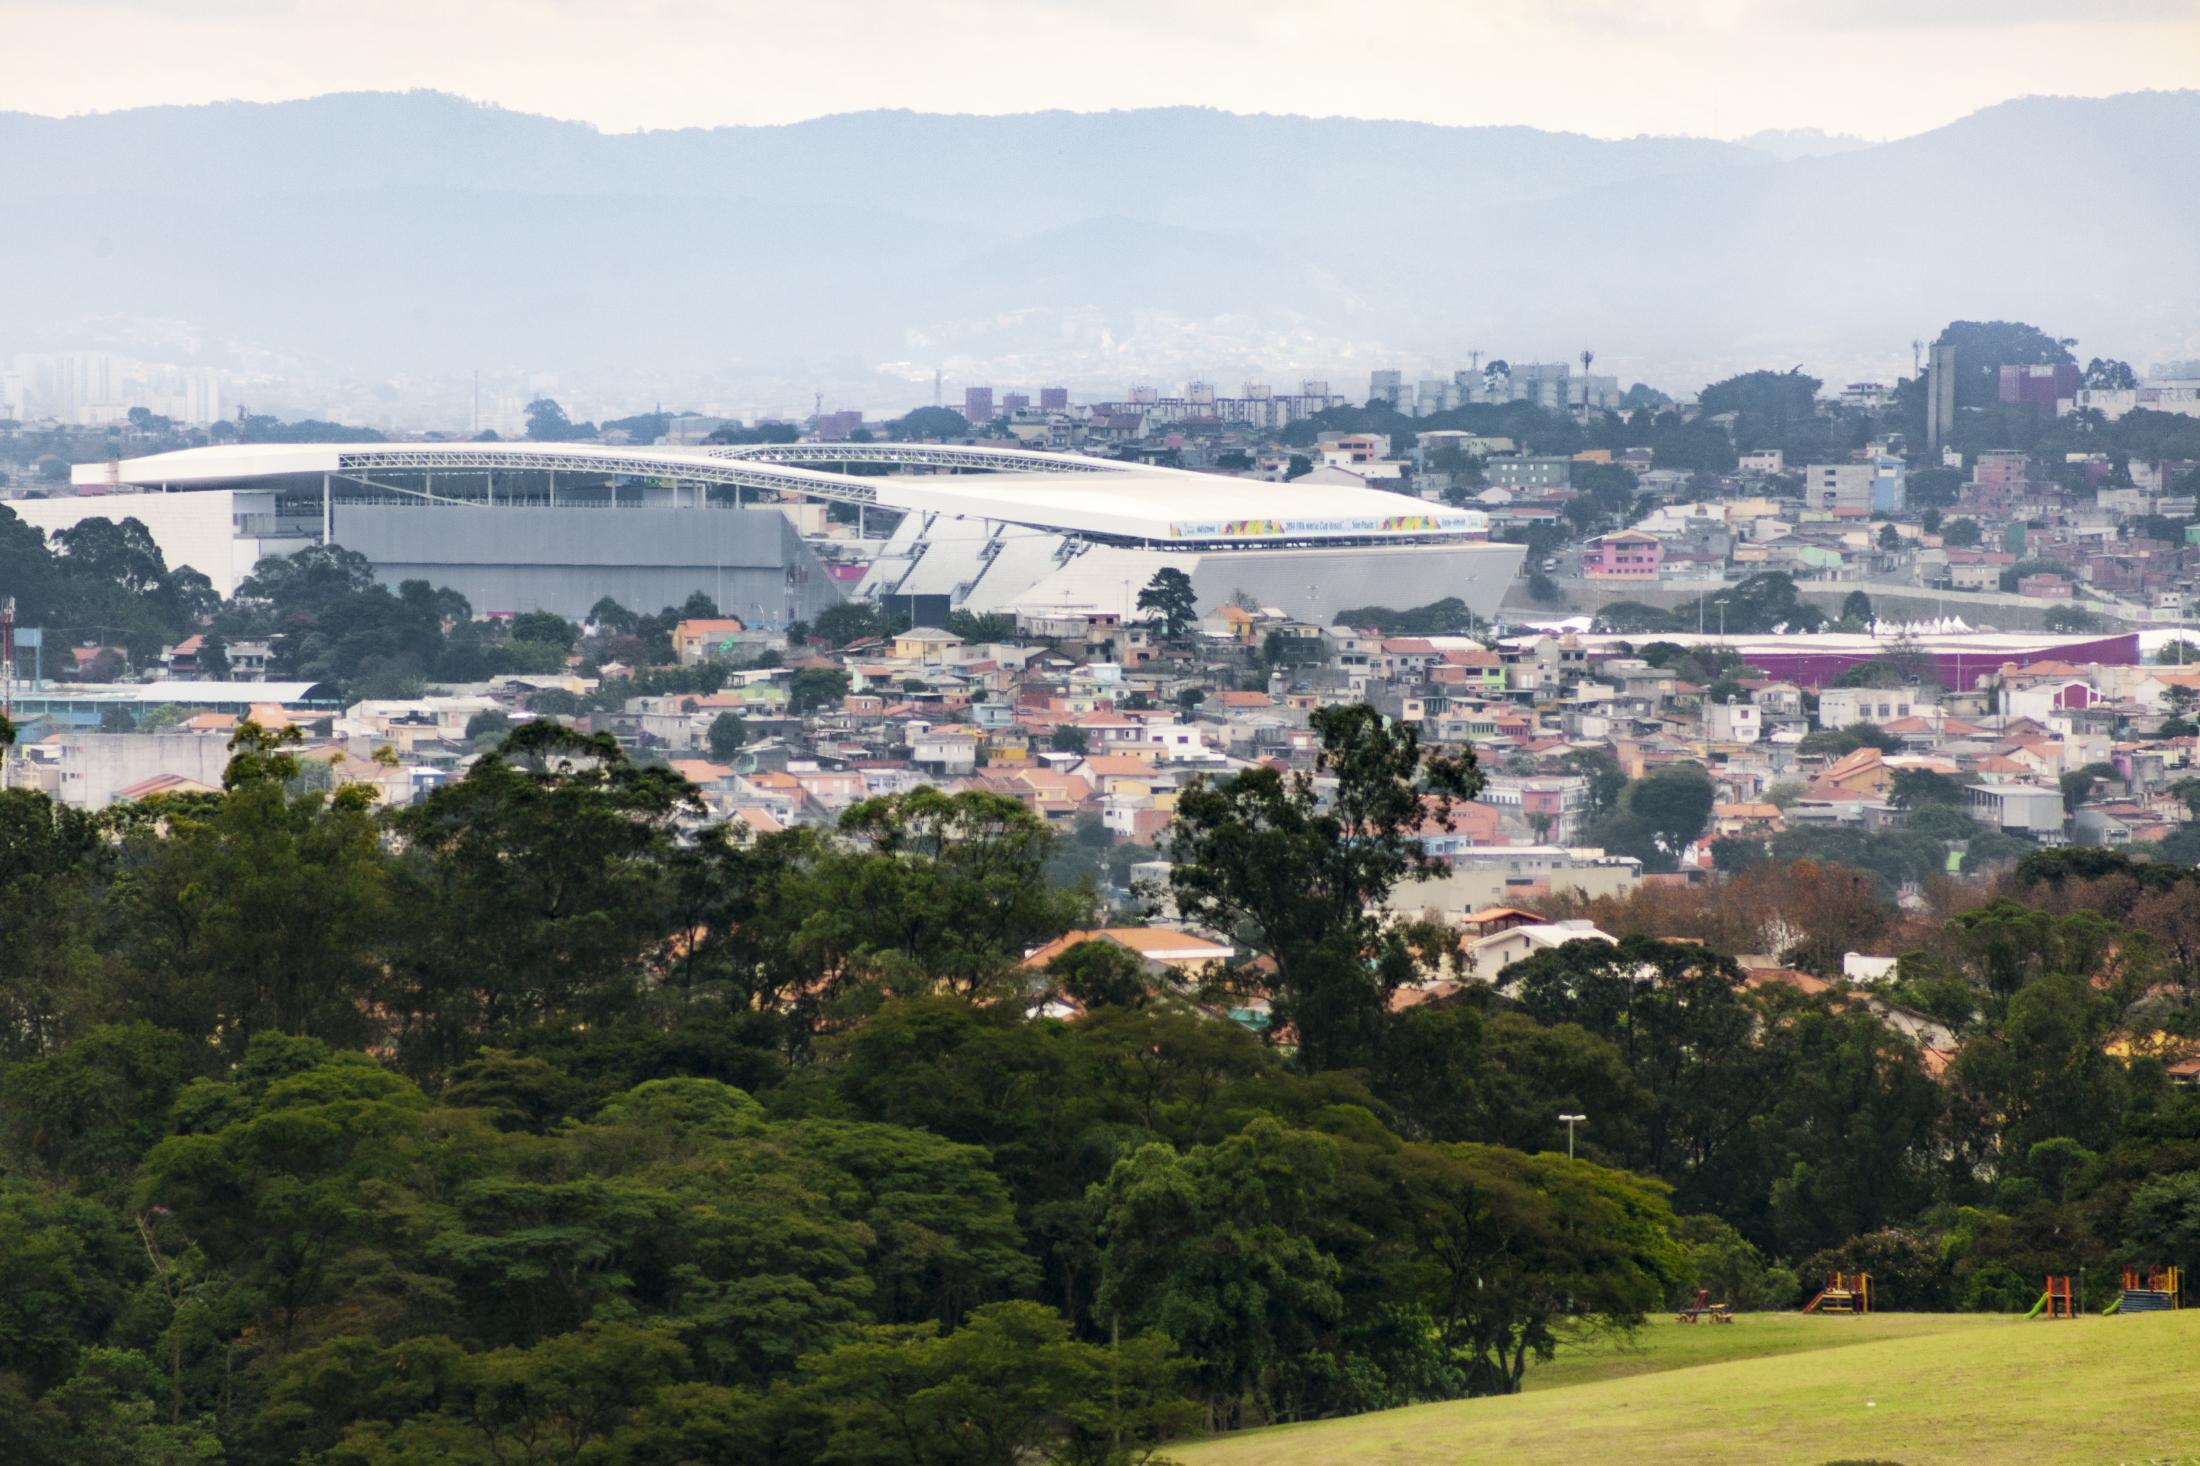 The 'Arena Corinthians' stadium, located at the Itaquera neighborhood,  seeing from the top of a hill at the MTST's shacks camp, located 3 miles away. Itaquera, São Paulo / Brazil. 2014.